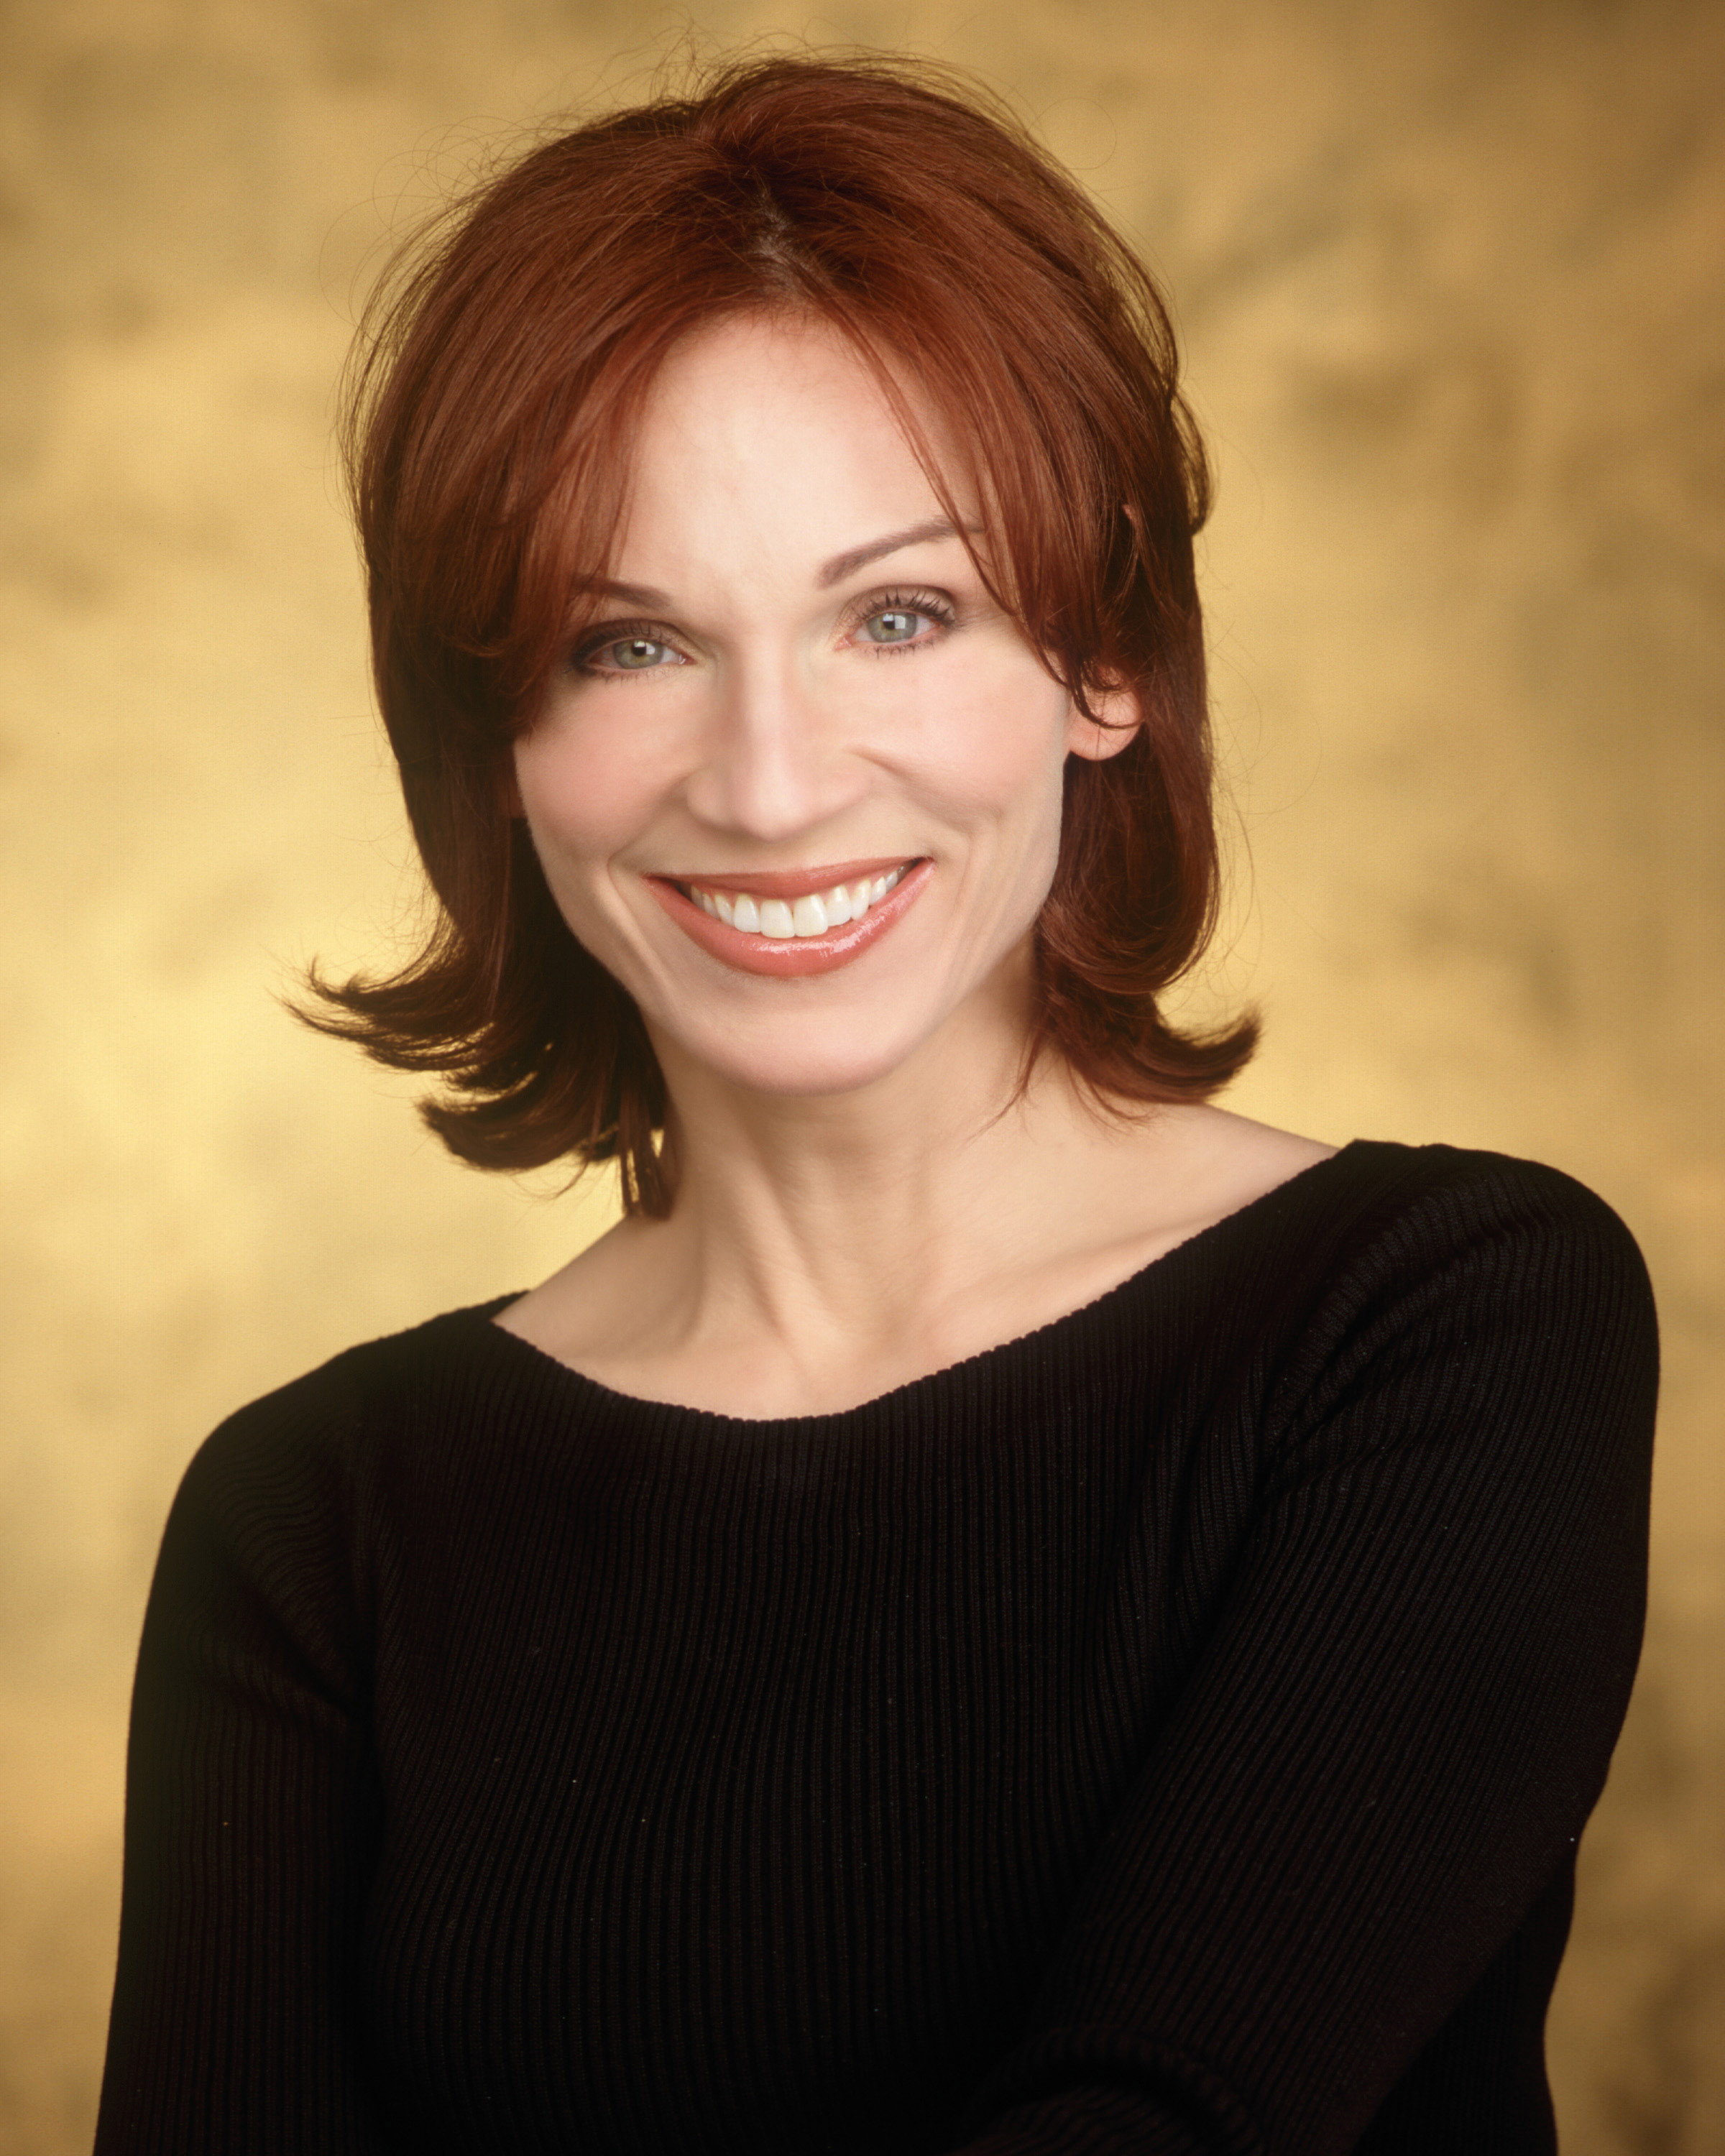 Marilu Henner nude (13 pictures) Porno, Snapchat, panties